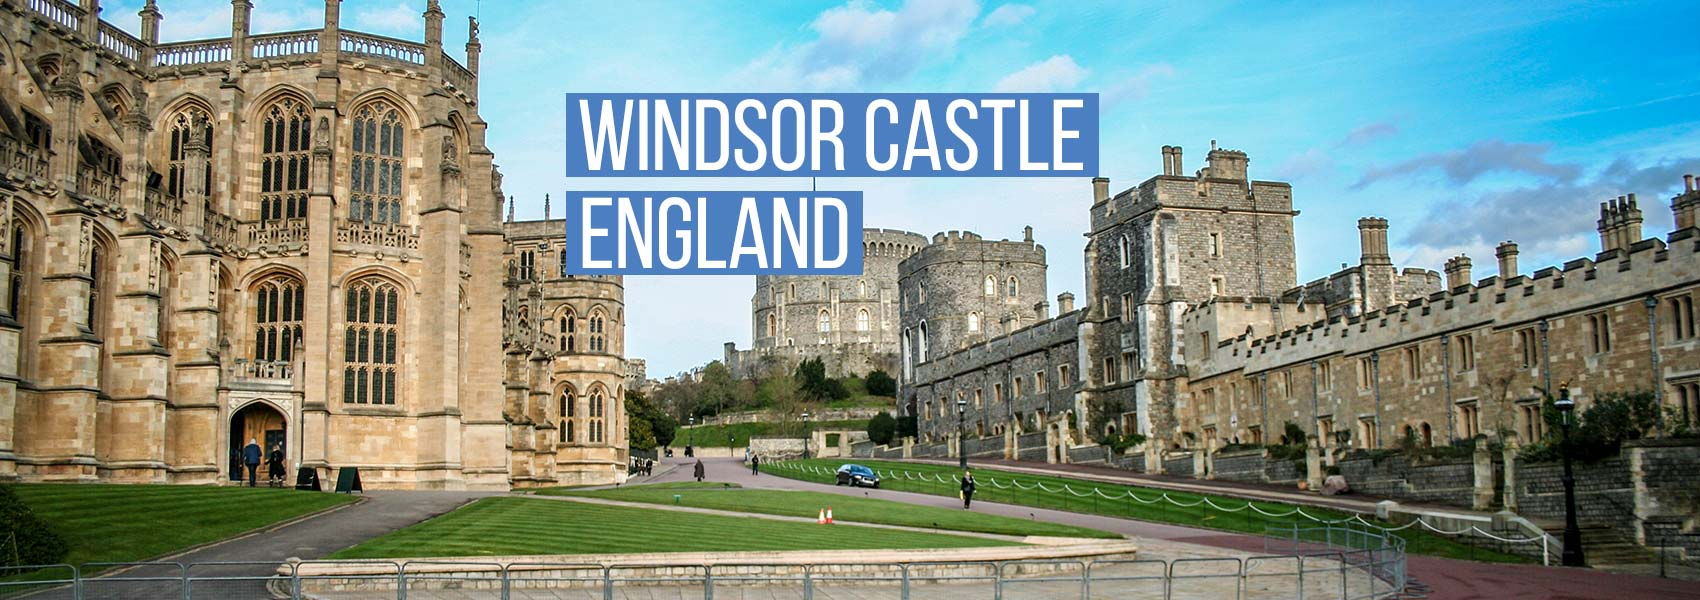 Visit Windsor Castle And See The Queen Of England Punch